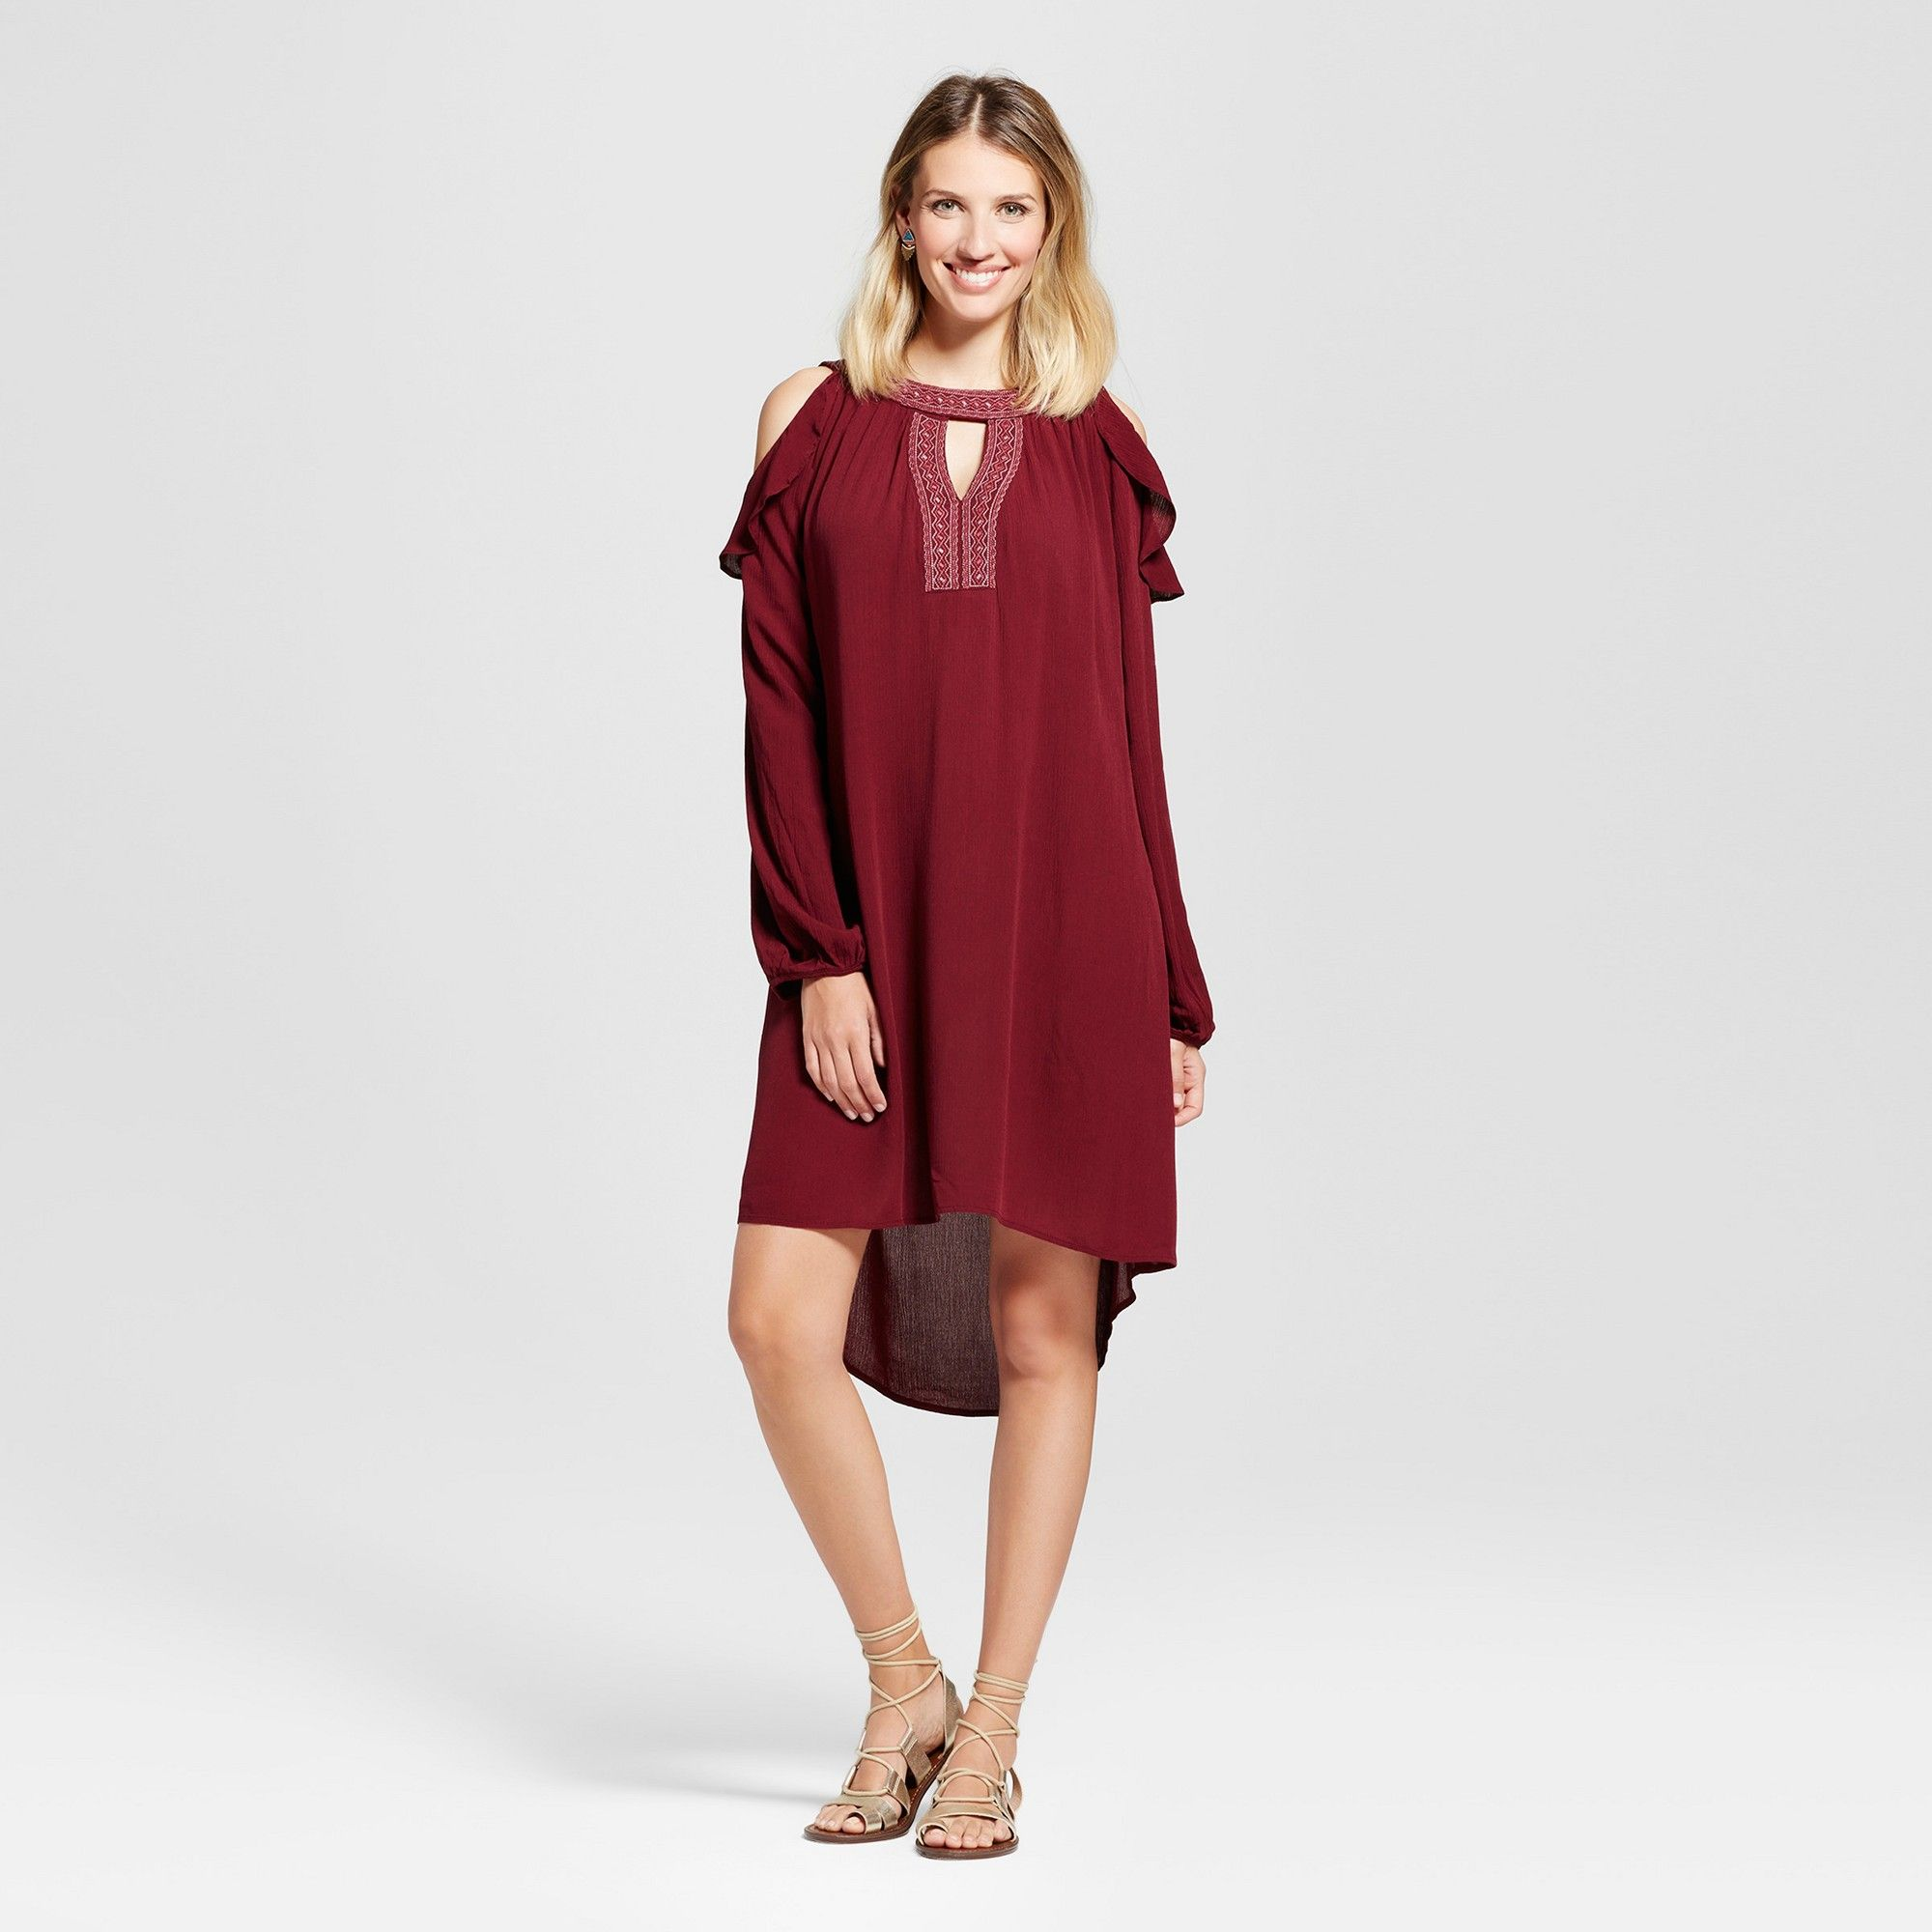 NEW Women/'s Embellished Cold Shoulder Ruffle Dress Knox Rose  Burgundy XS